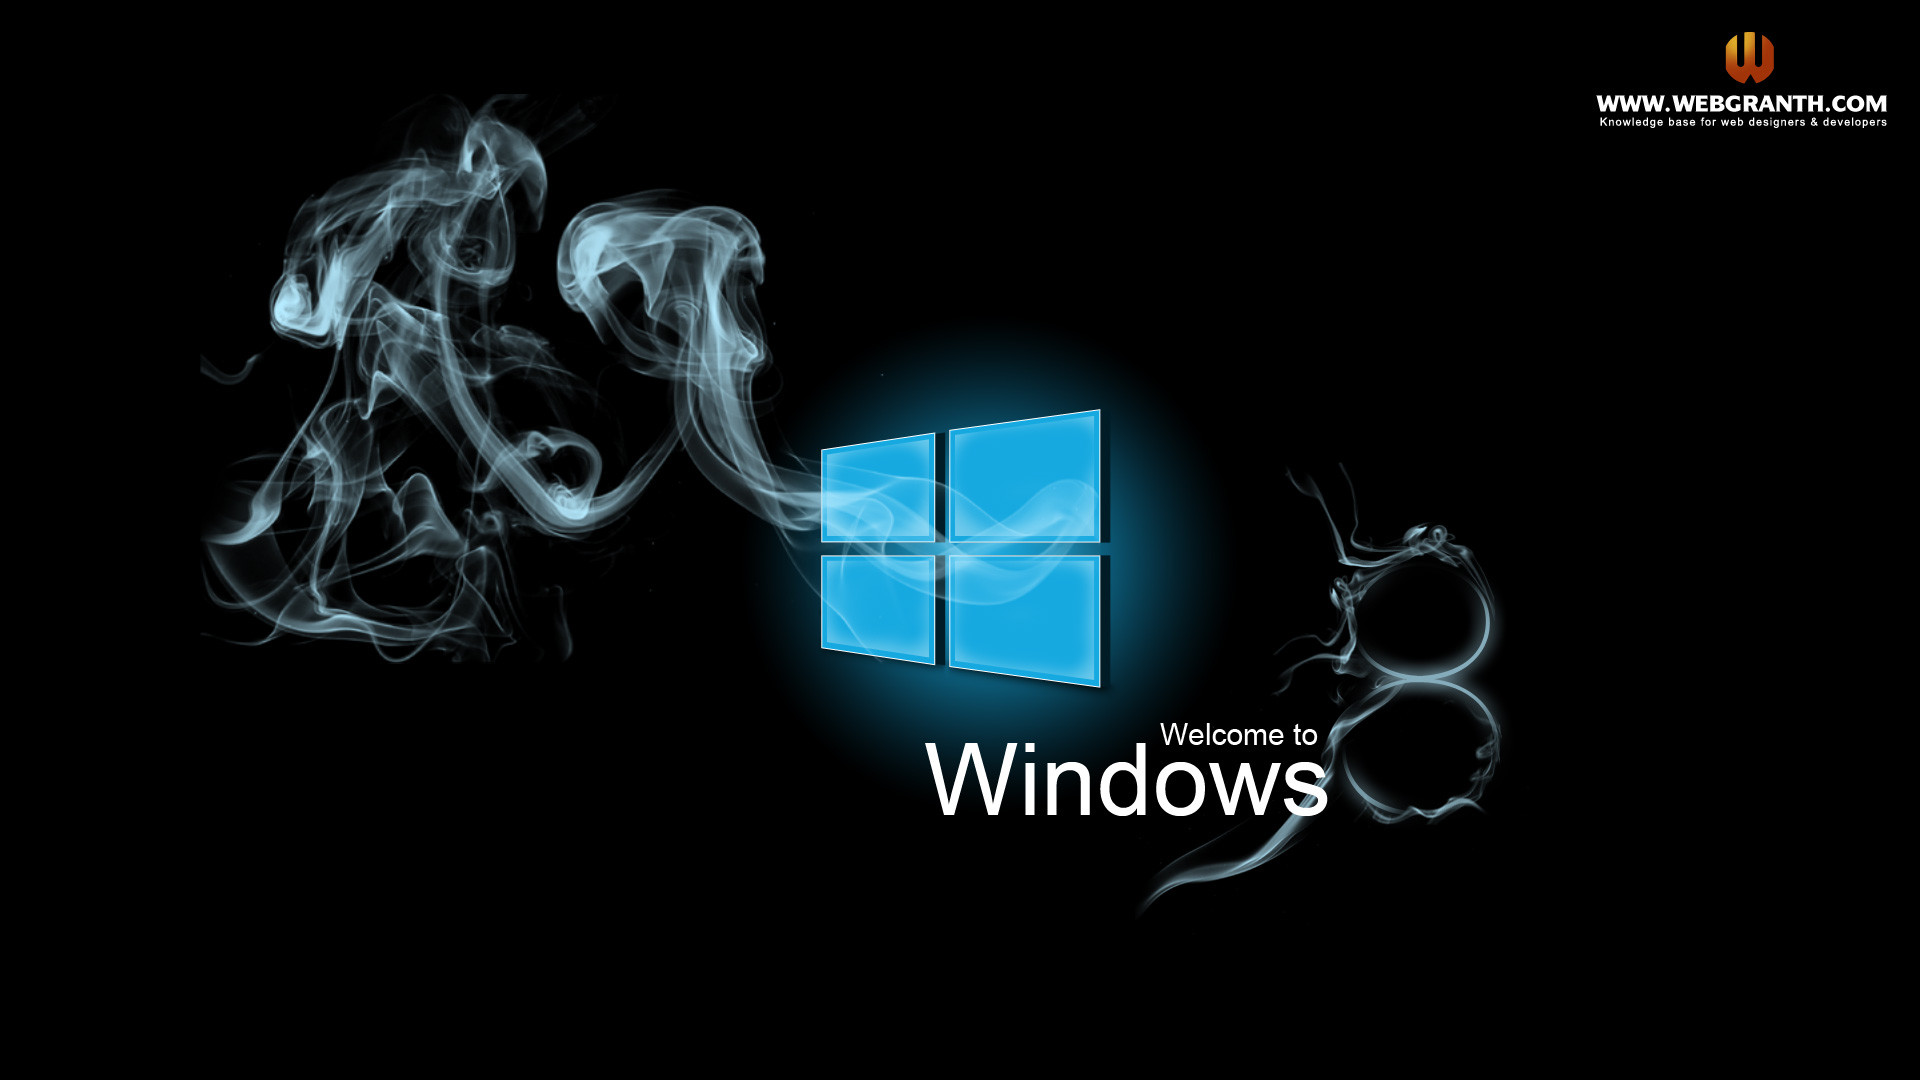 Windows 8 Wallpaper Backgrounds (2): View HD Image of Free Windows 8 .